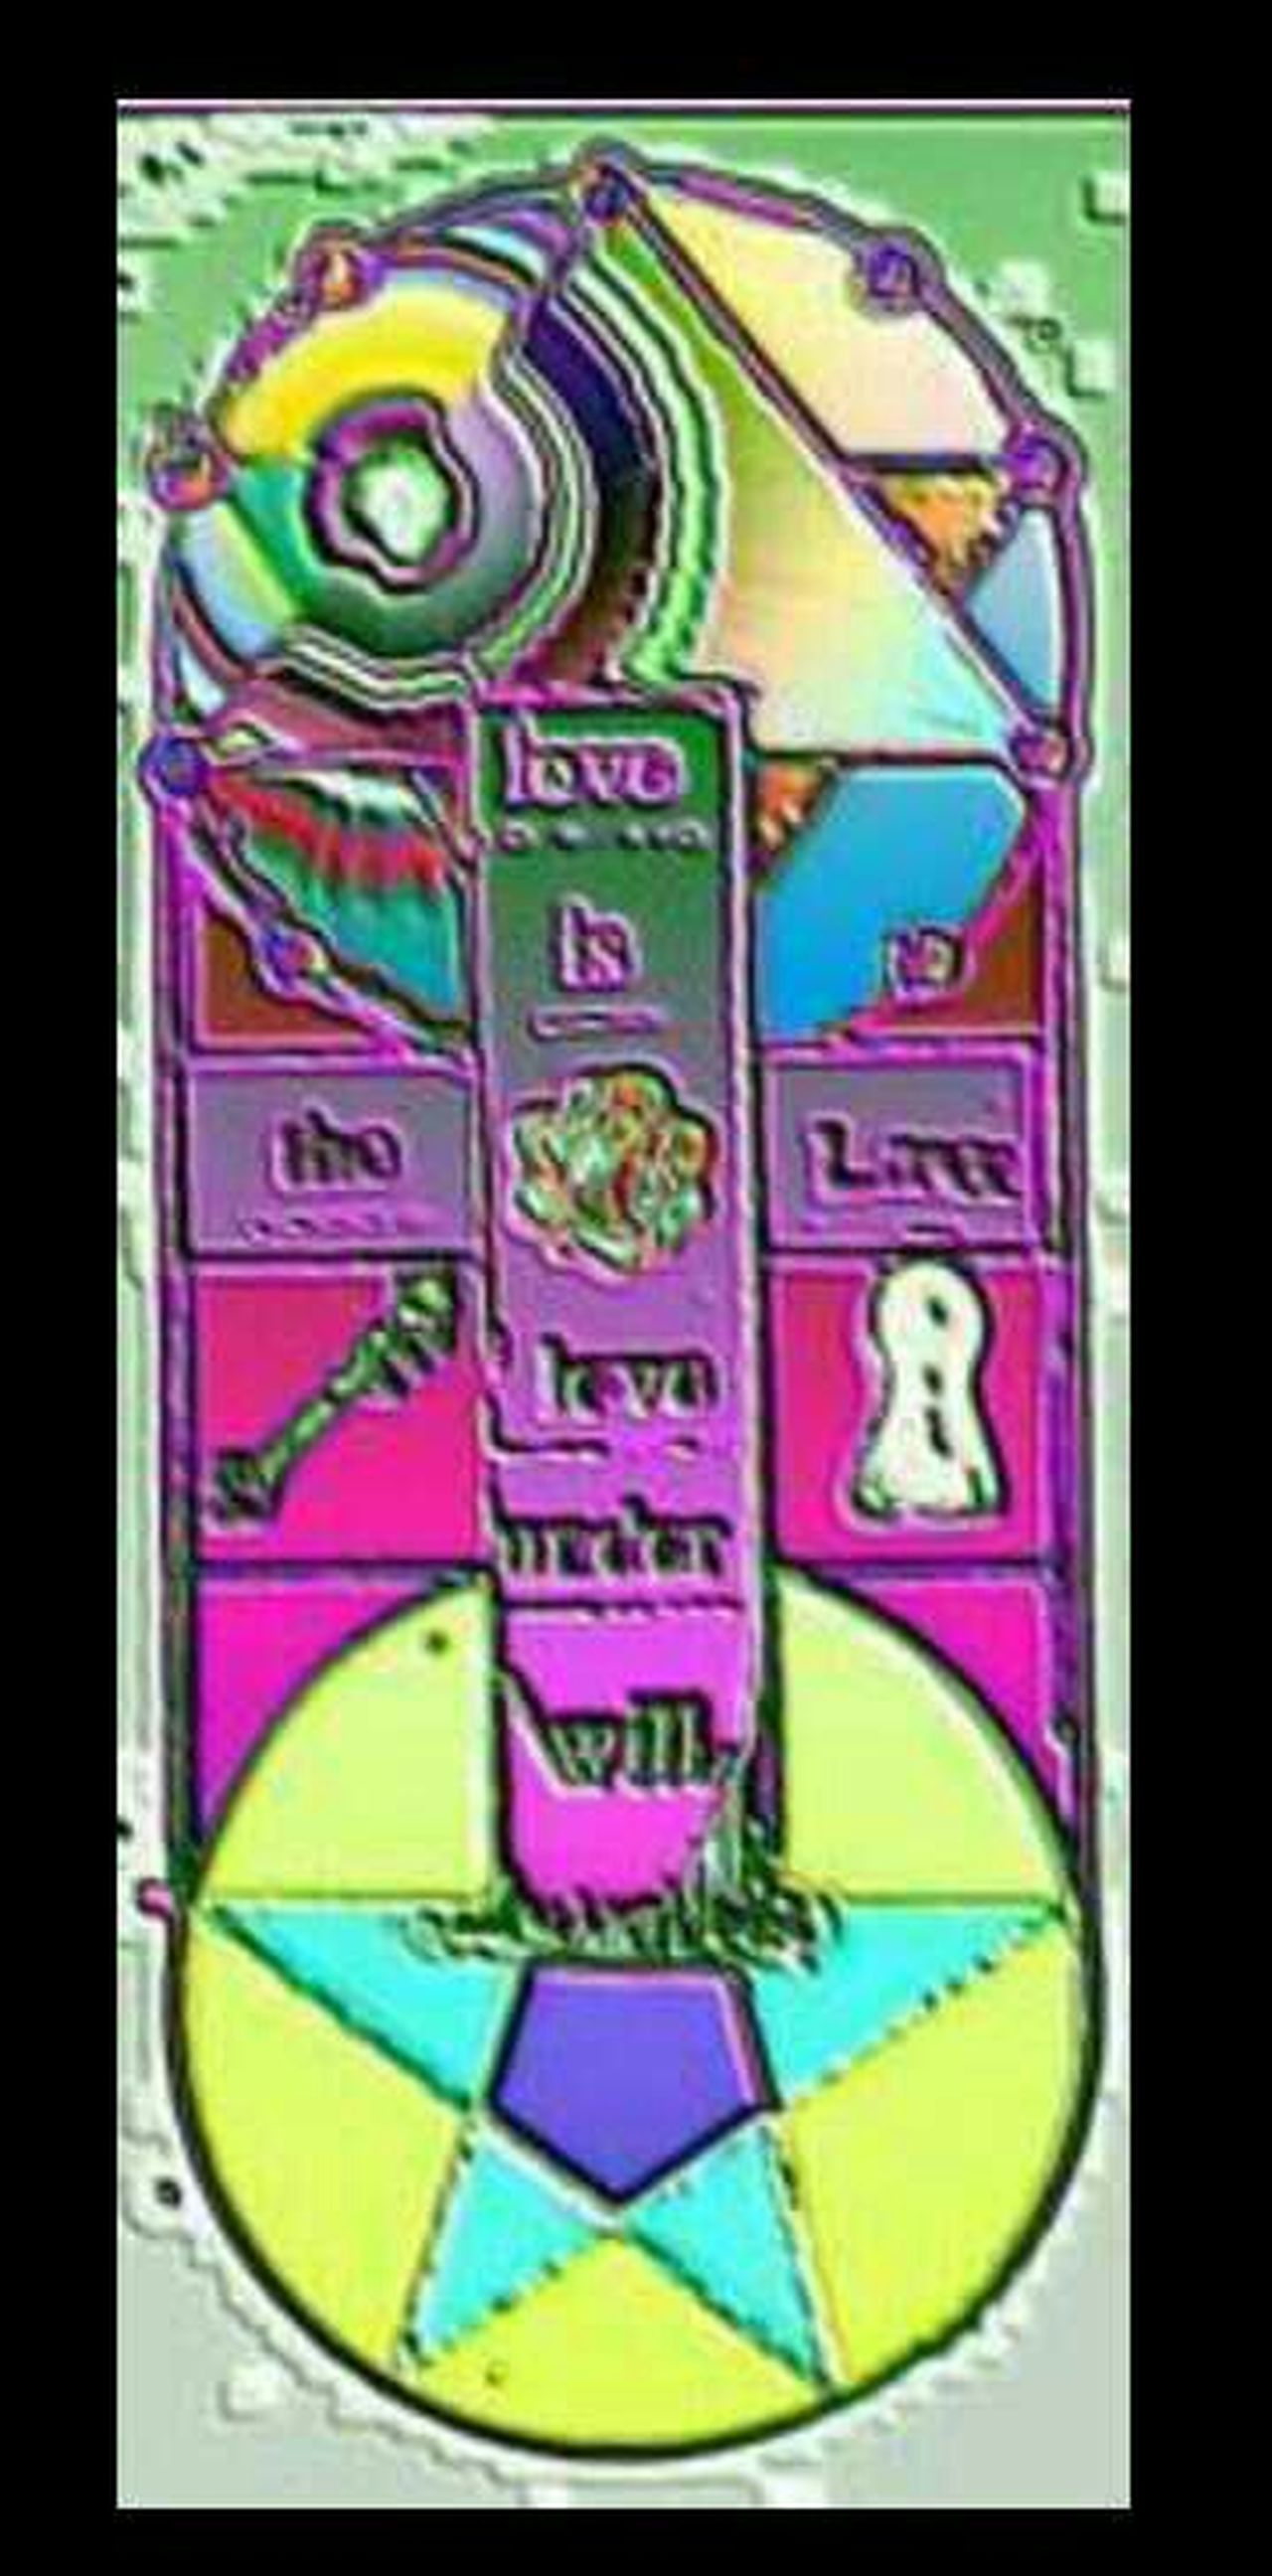 Grafic Design Drawing graffic design Tarot Esoteric Cross Spiritual Spirituality Love Is The Way Love Love Is... Law Will Free Will Aleister Crowley Aleistercrowley Hippykid Kreatives Religious Art Pastel Power